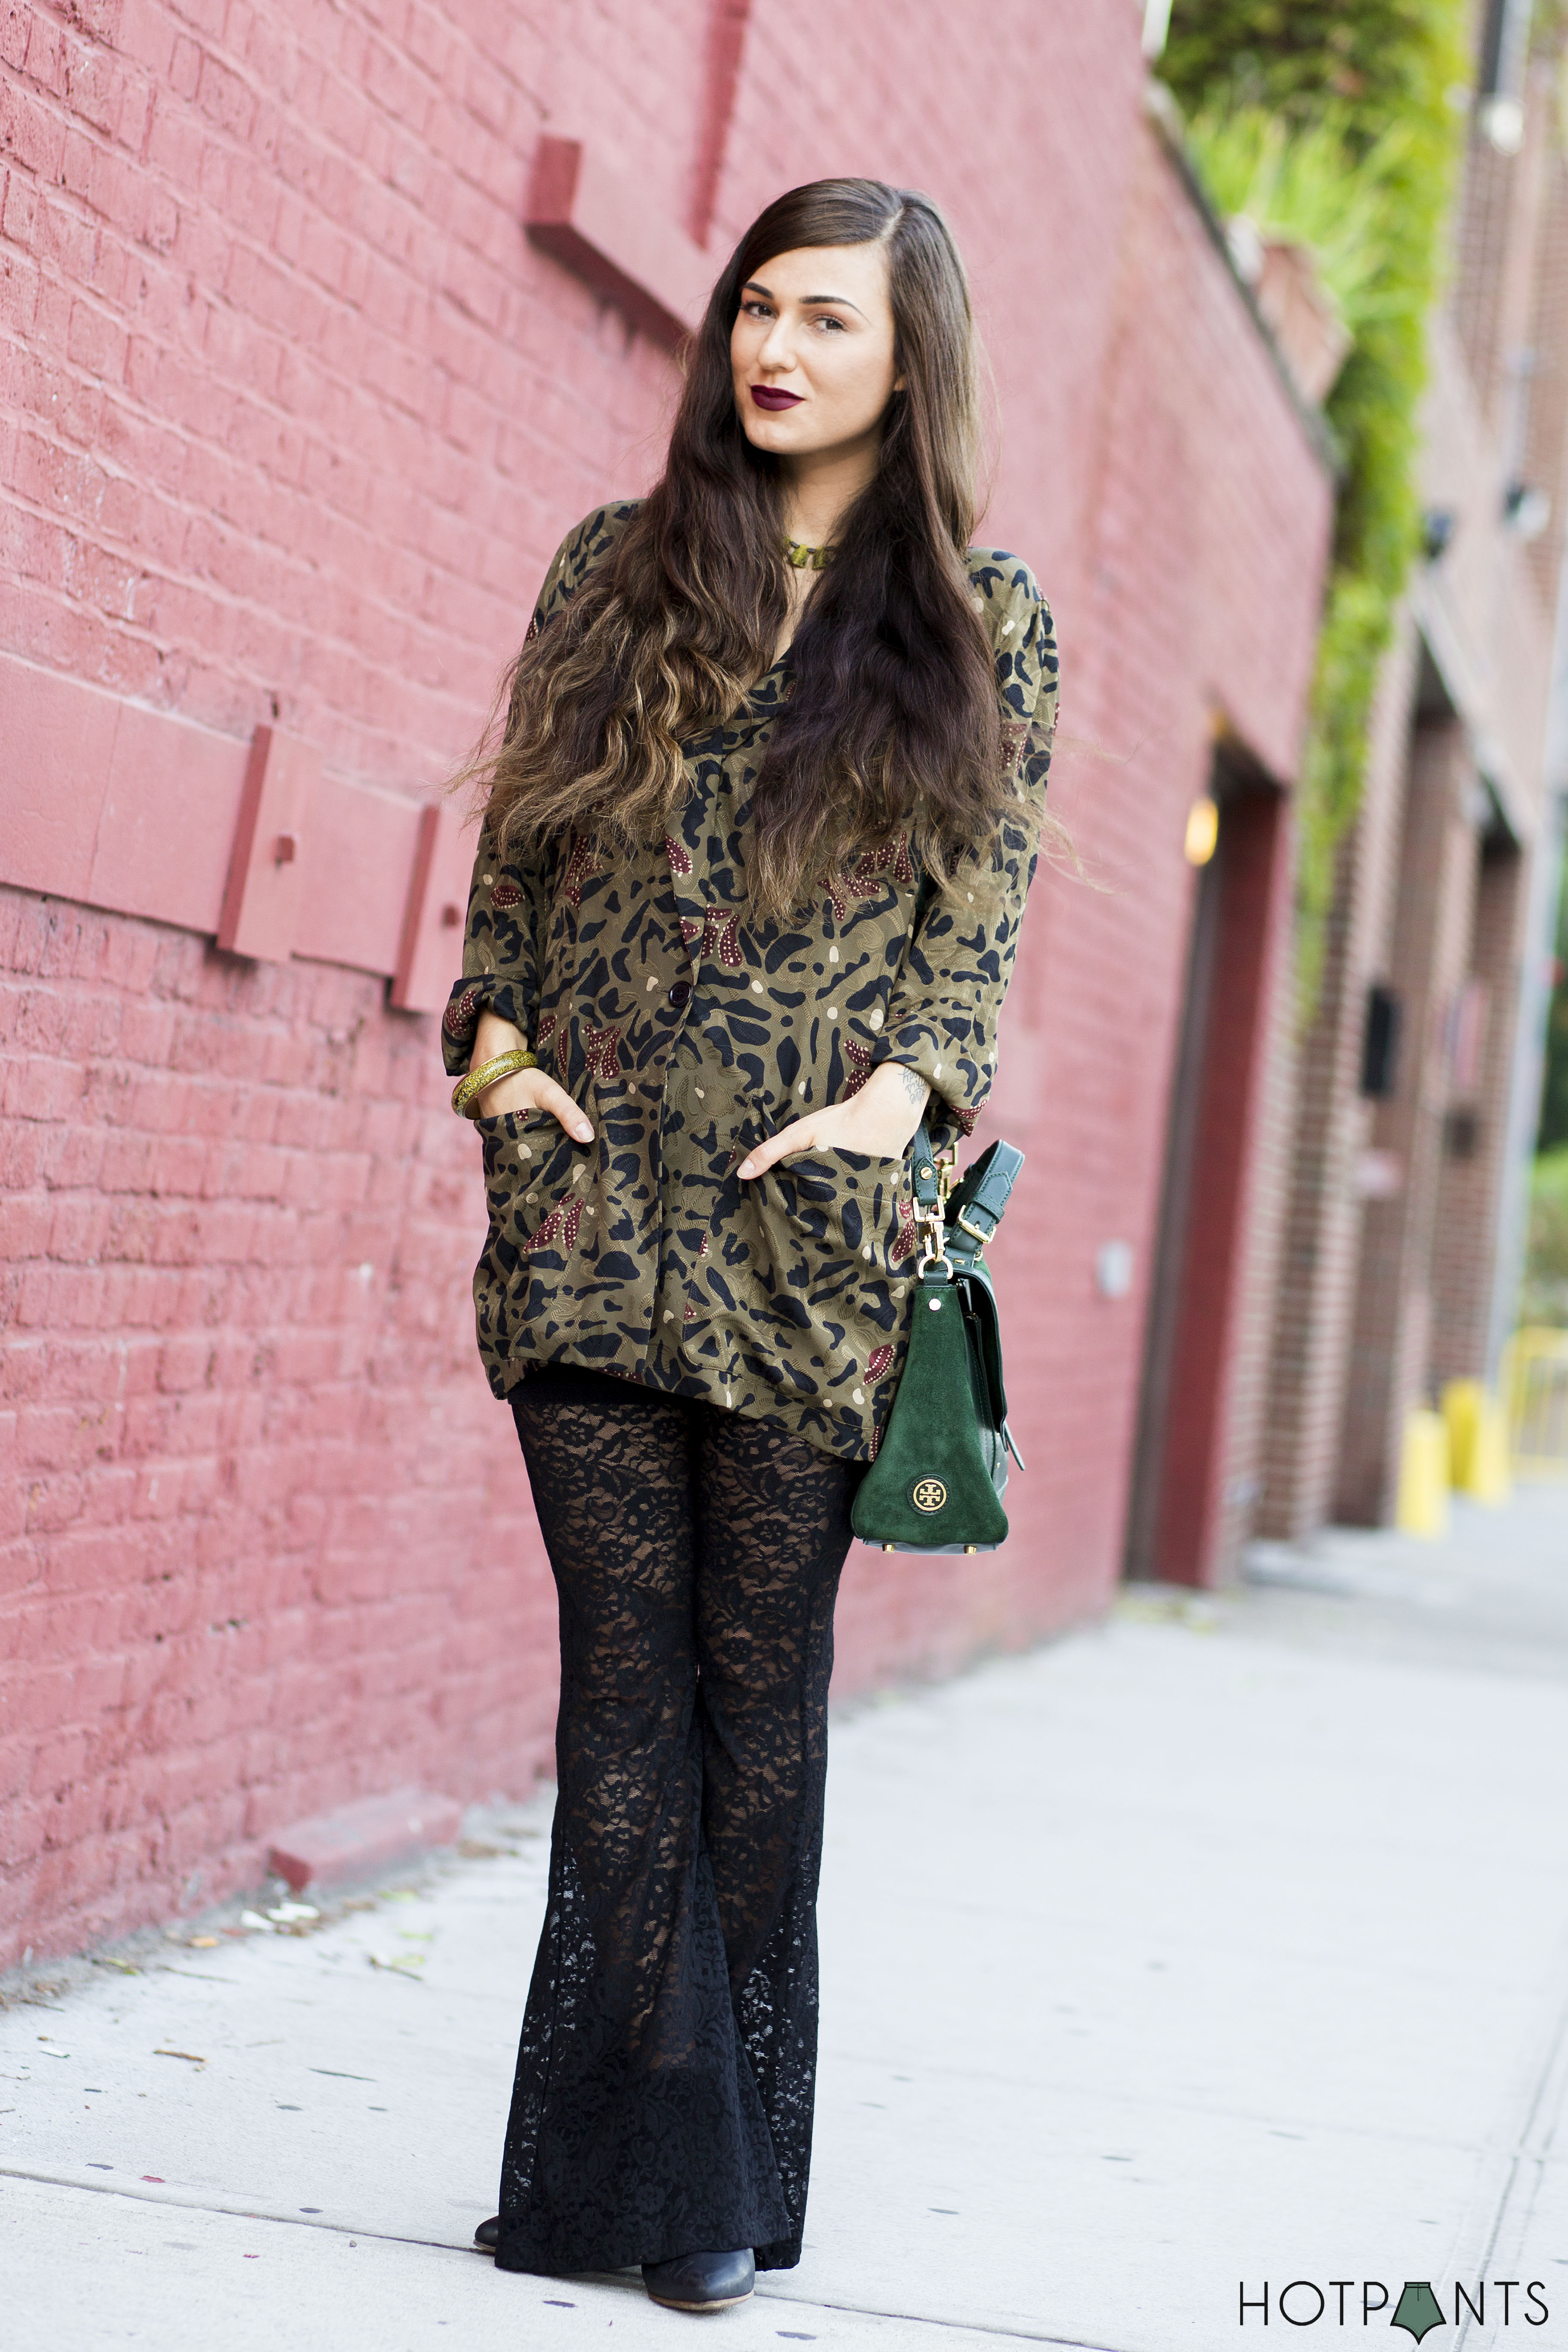 Do The Hotpants Dana Suchow Lace Leggings Long Hair NYC Blogger Bell Bottoms 17